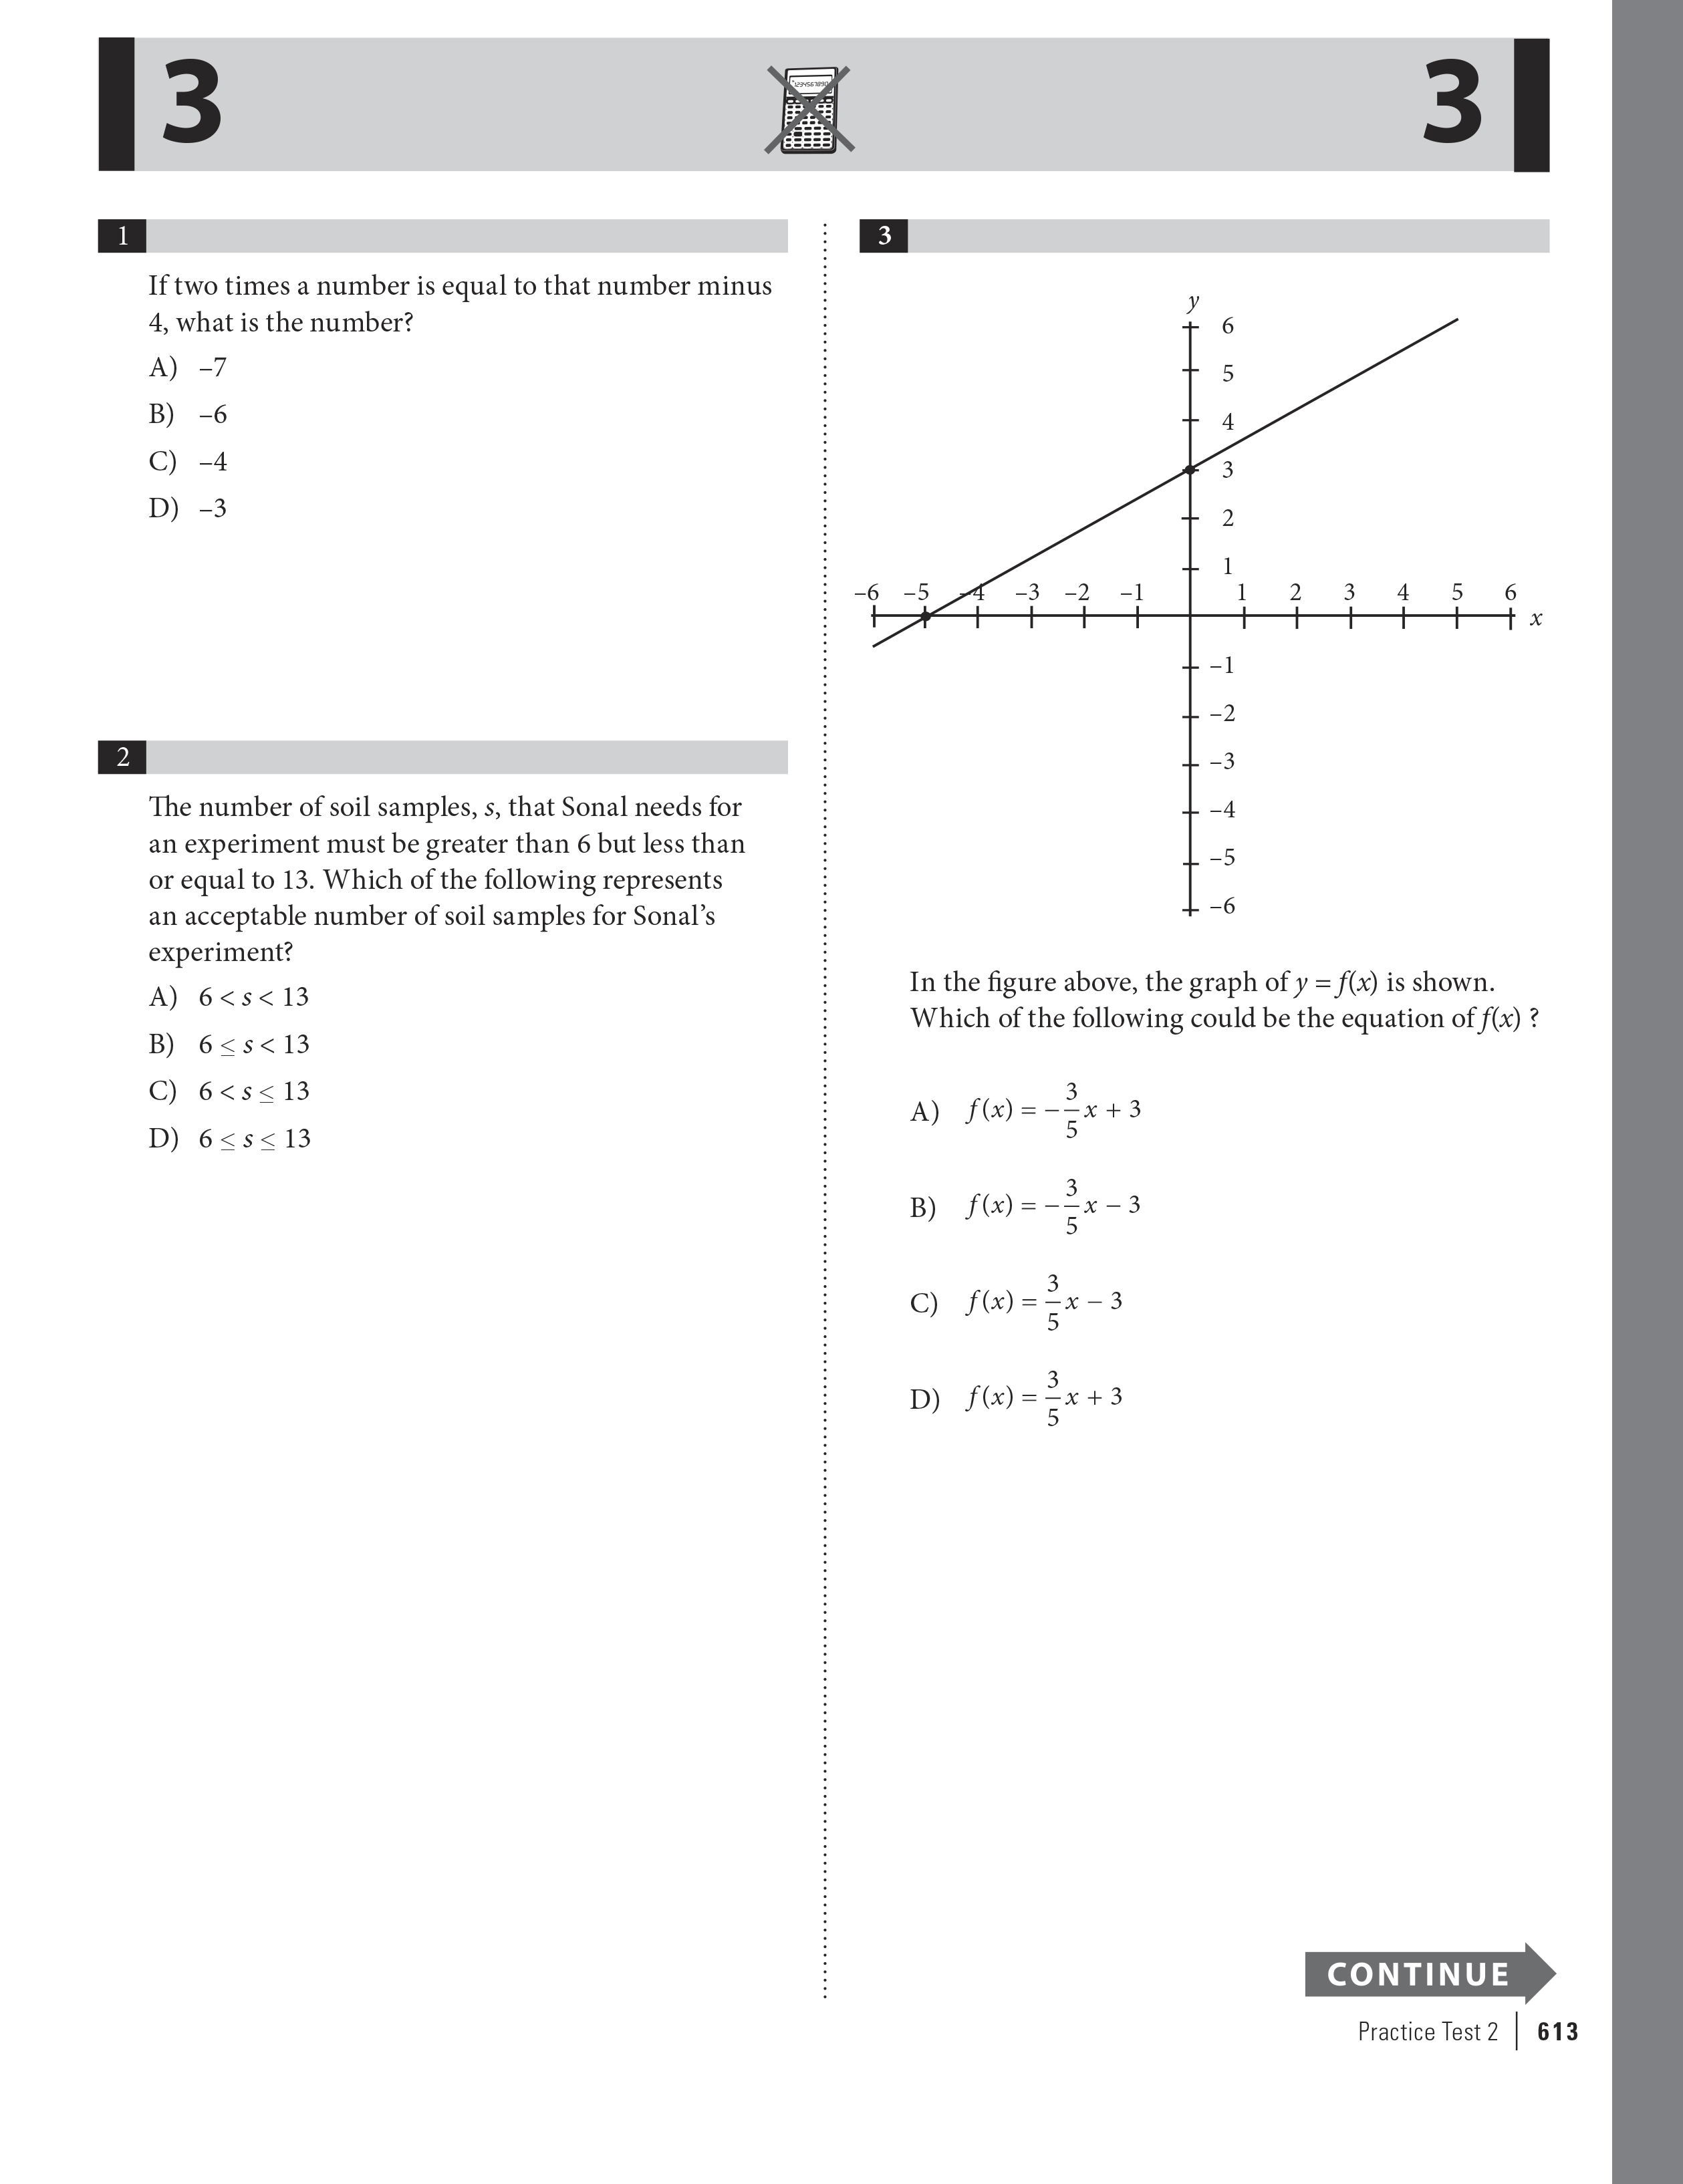 Extended ebook content for Cracking the SAT with 6